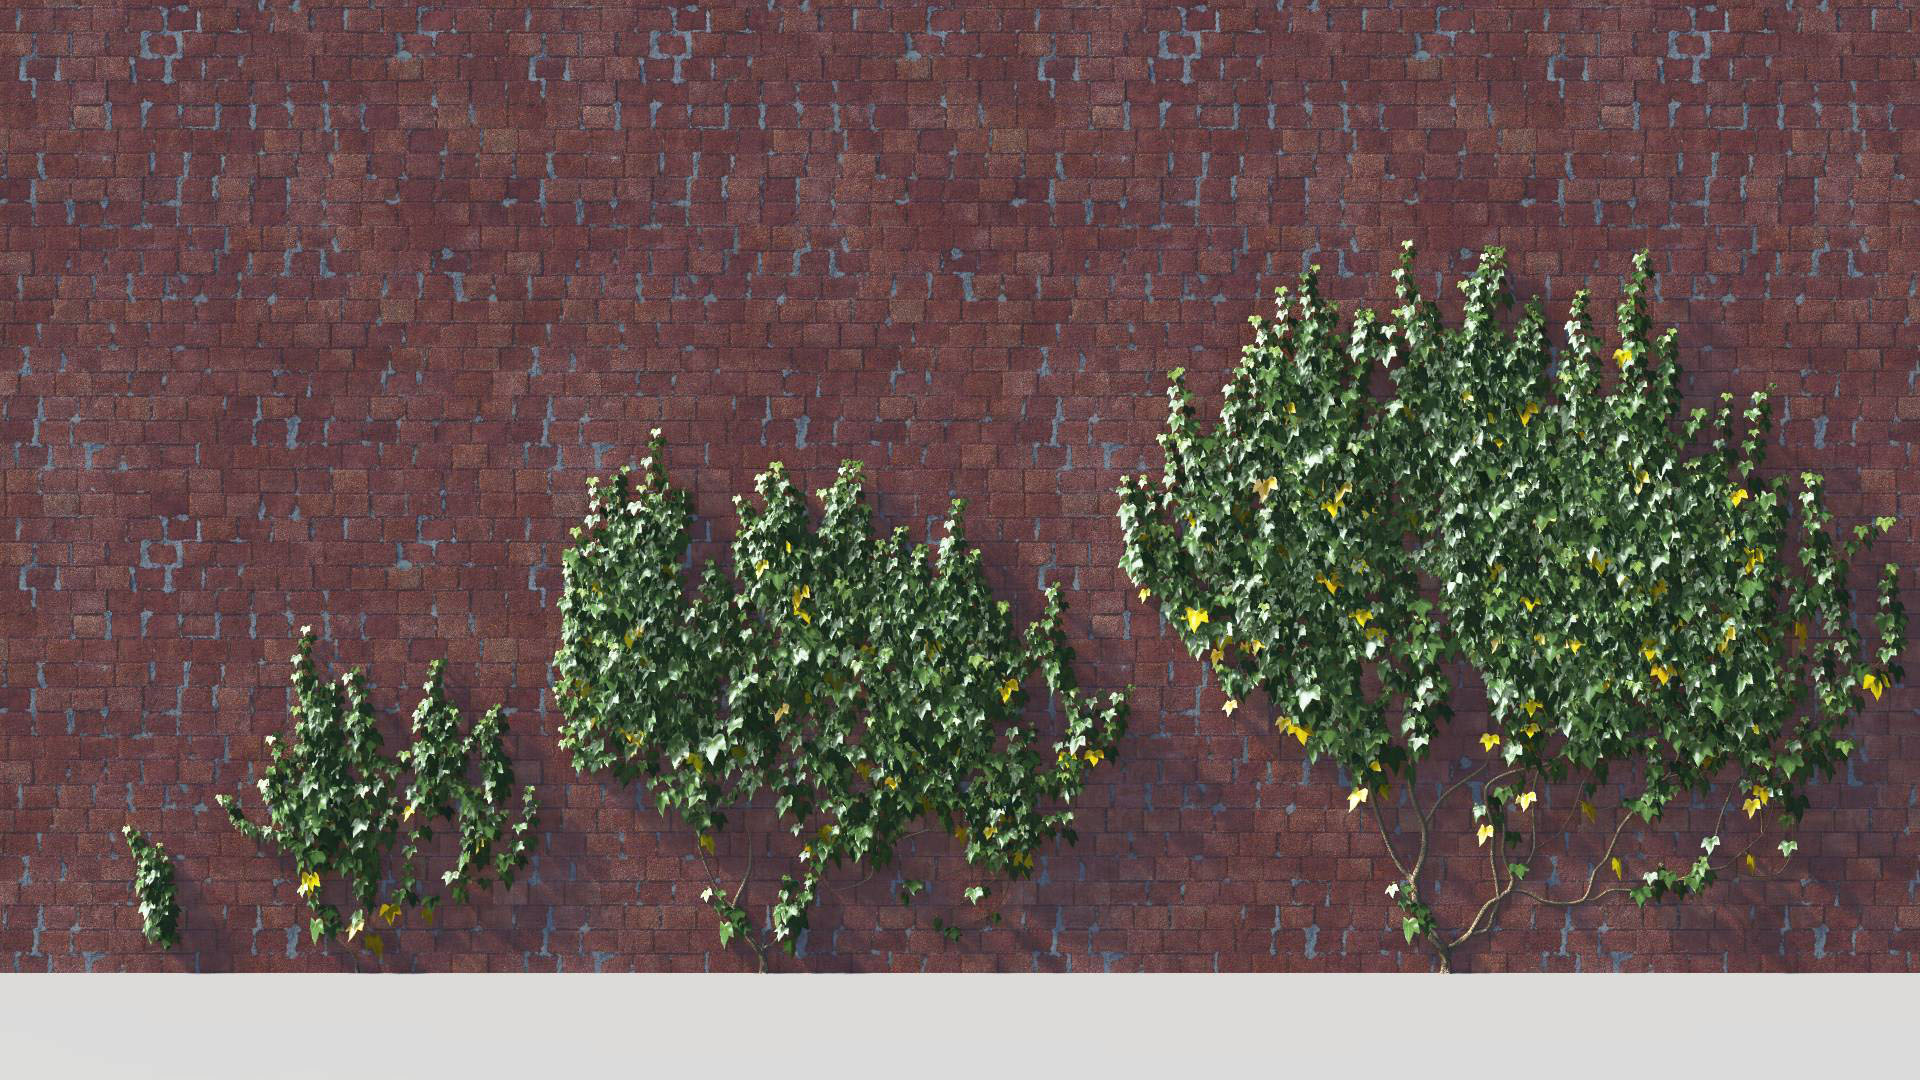 3D model of the Green ivy wall climber Hedera helix wall climber green